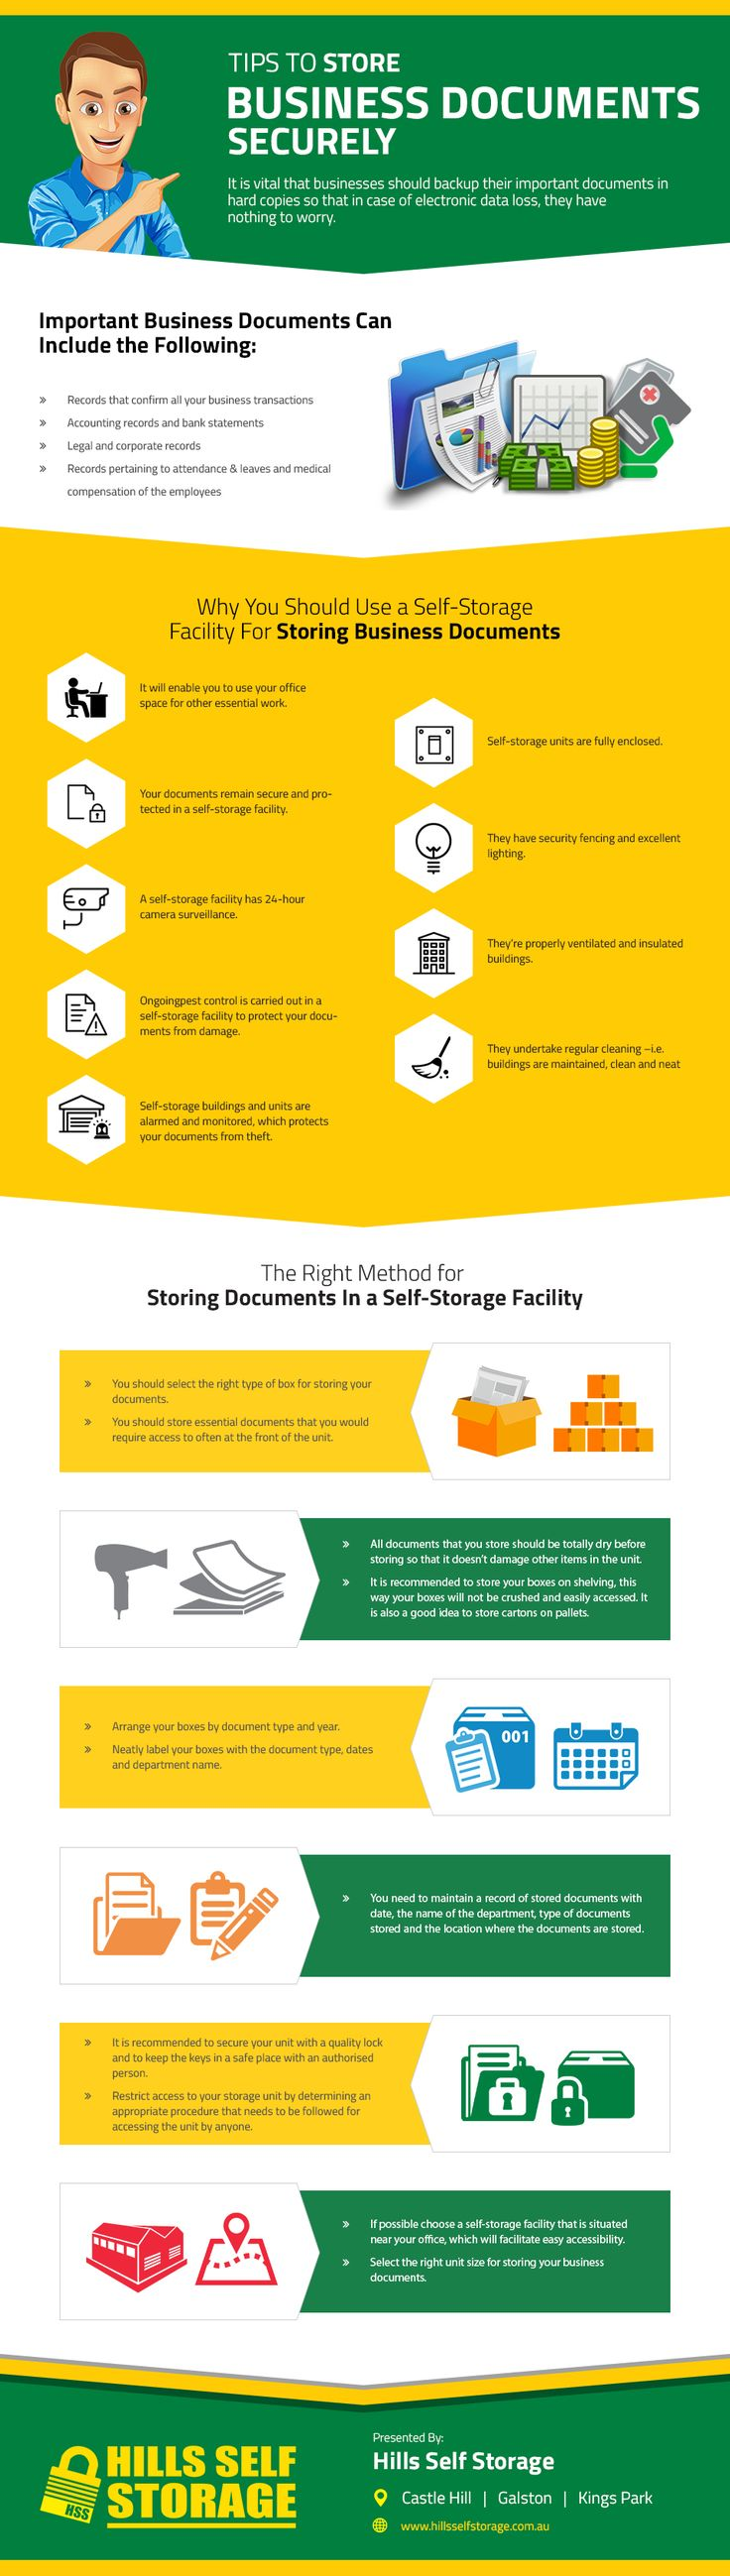 Tips to Store Business Documents Securely [Infographic]